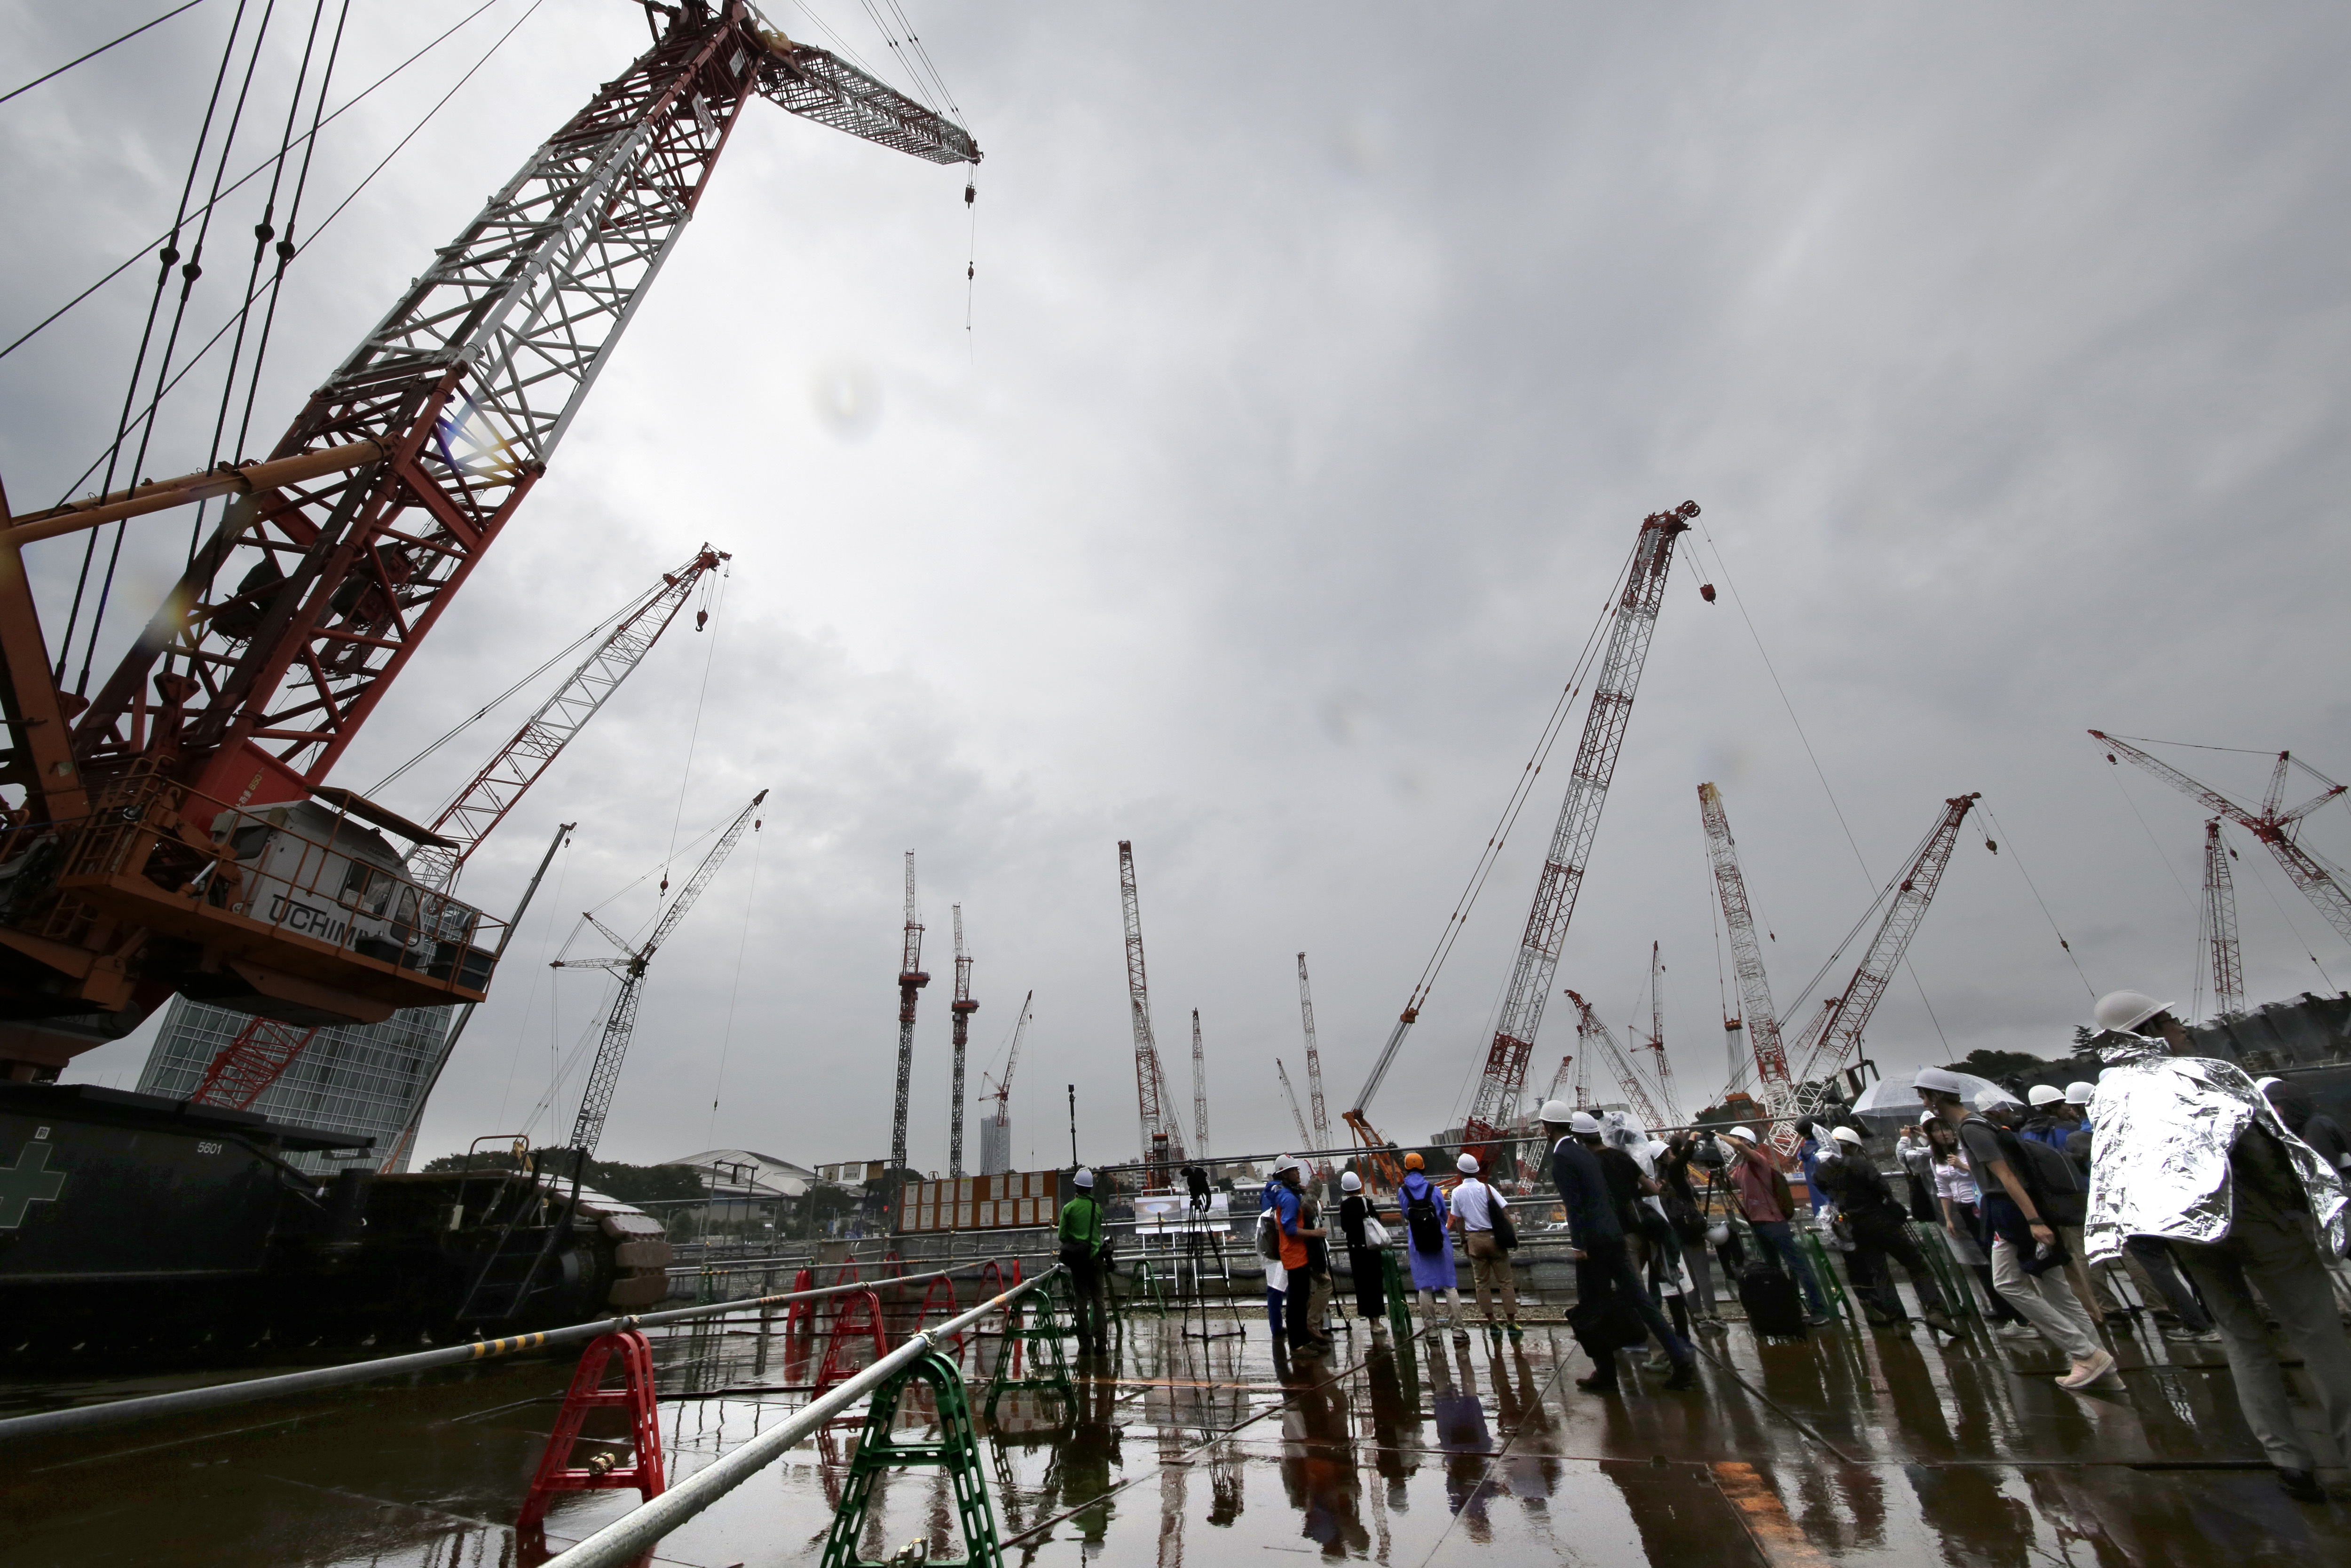 Members of the media review the construction of the new national stadium in Tokyo, Tuesday, Sept. 12, 2017. Tokyo's main Olympic stadium is starting to take shape as structures of what will become spectator stands are being installed after 10 months of un